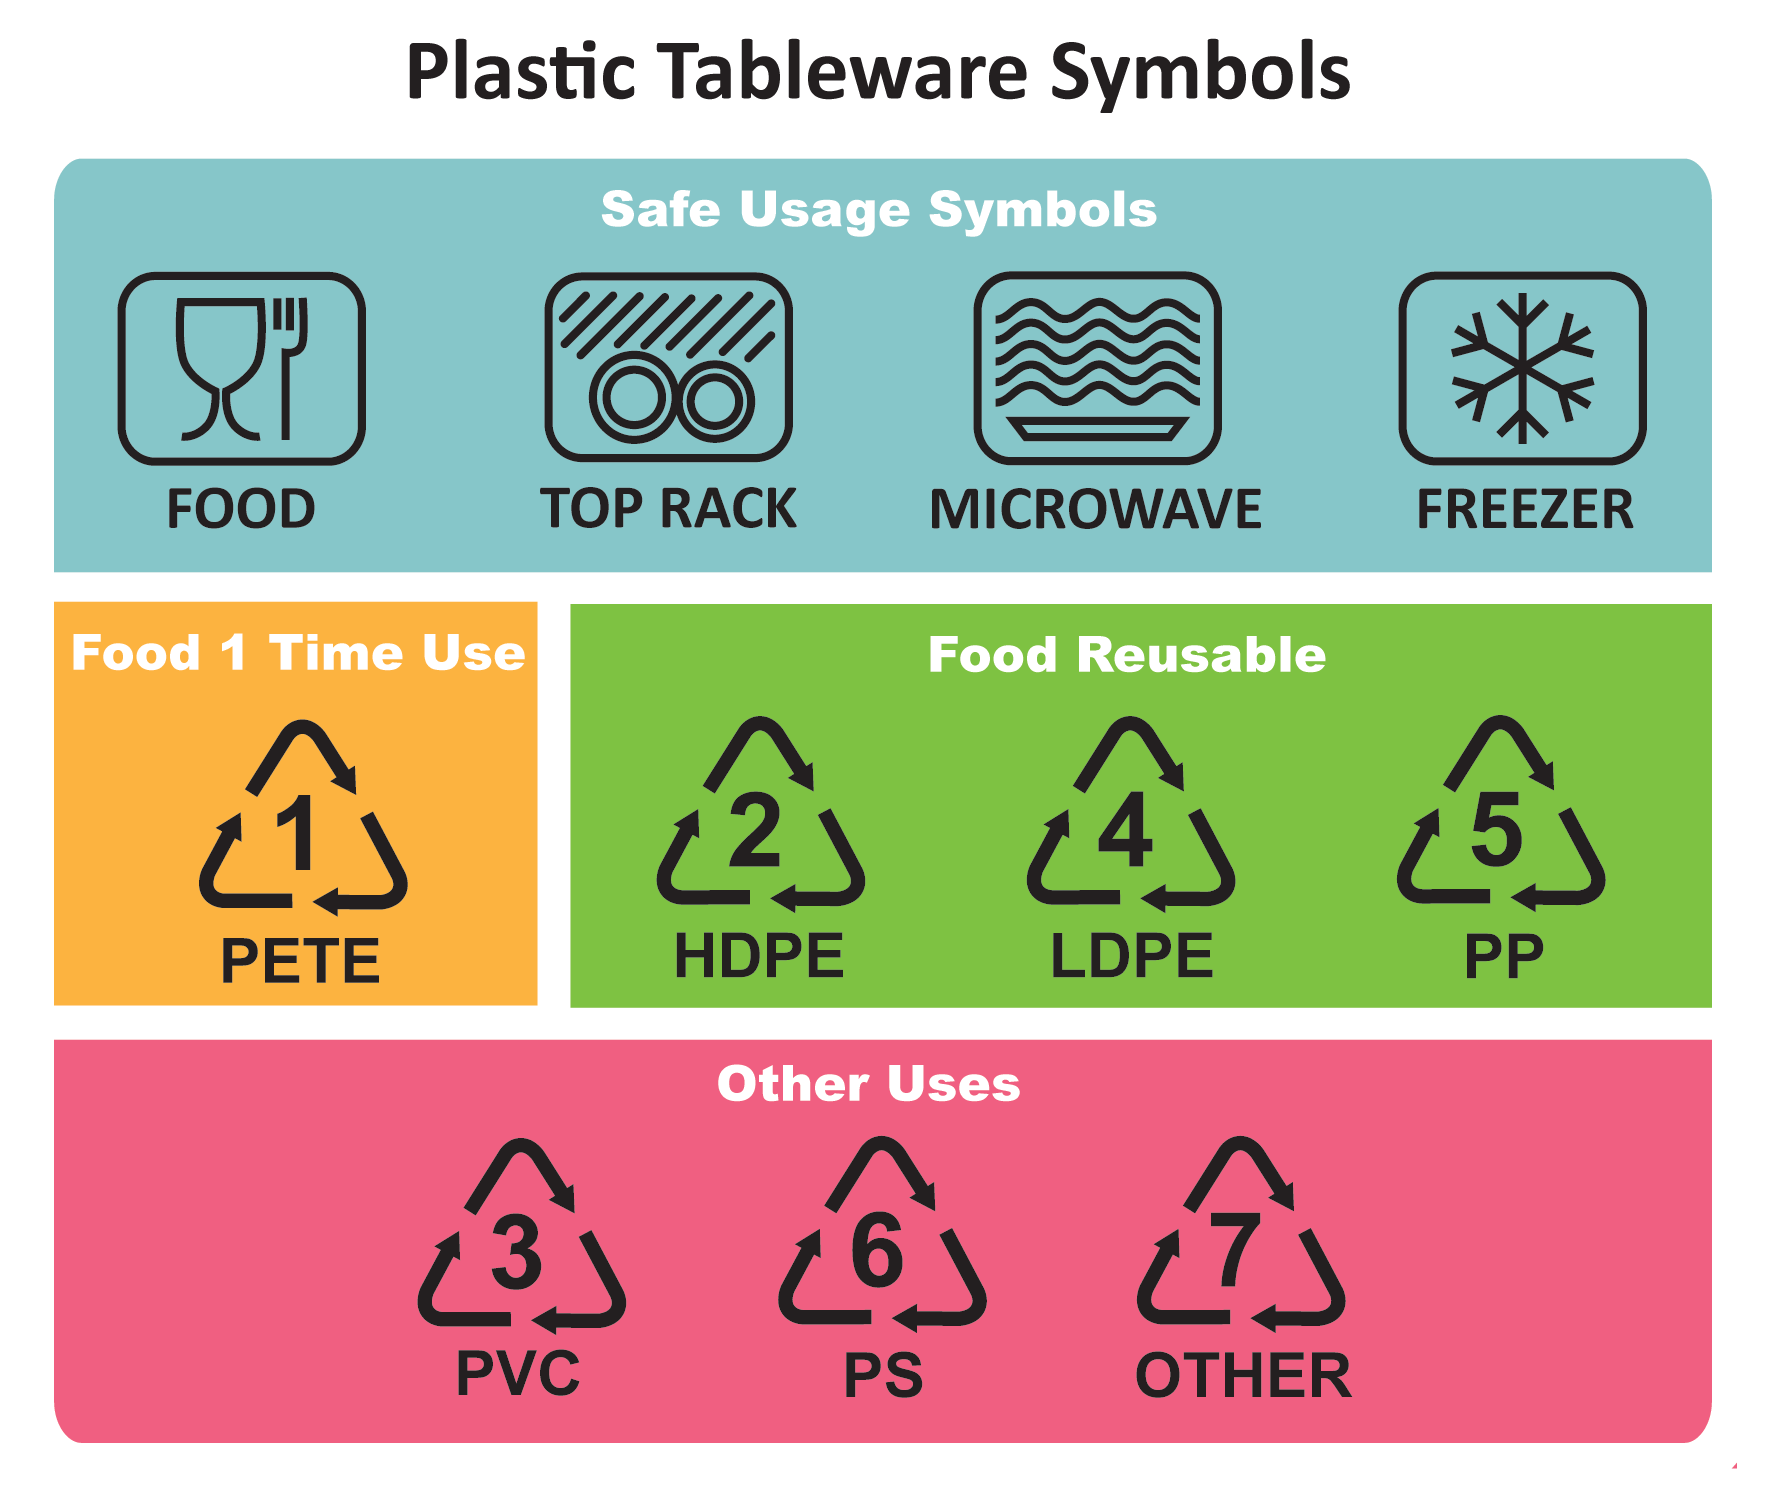 Food container recycle and safe use symbols - an infographic